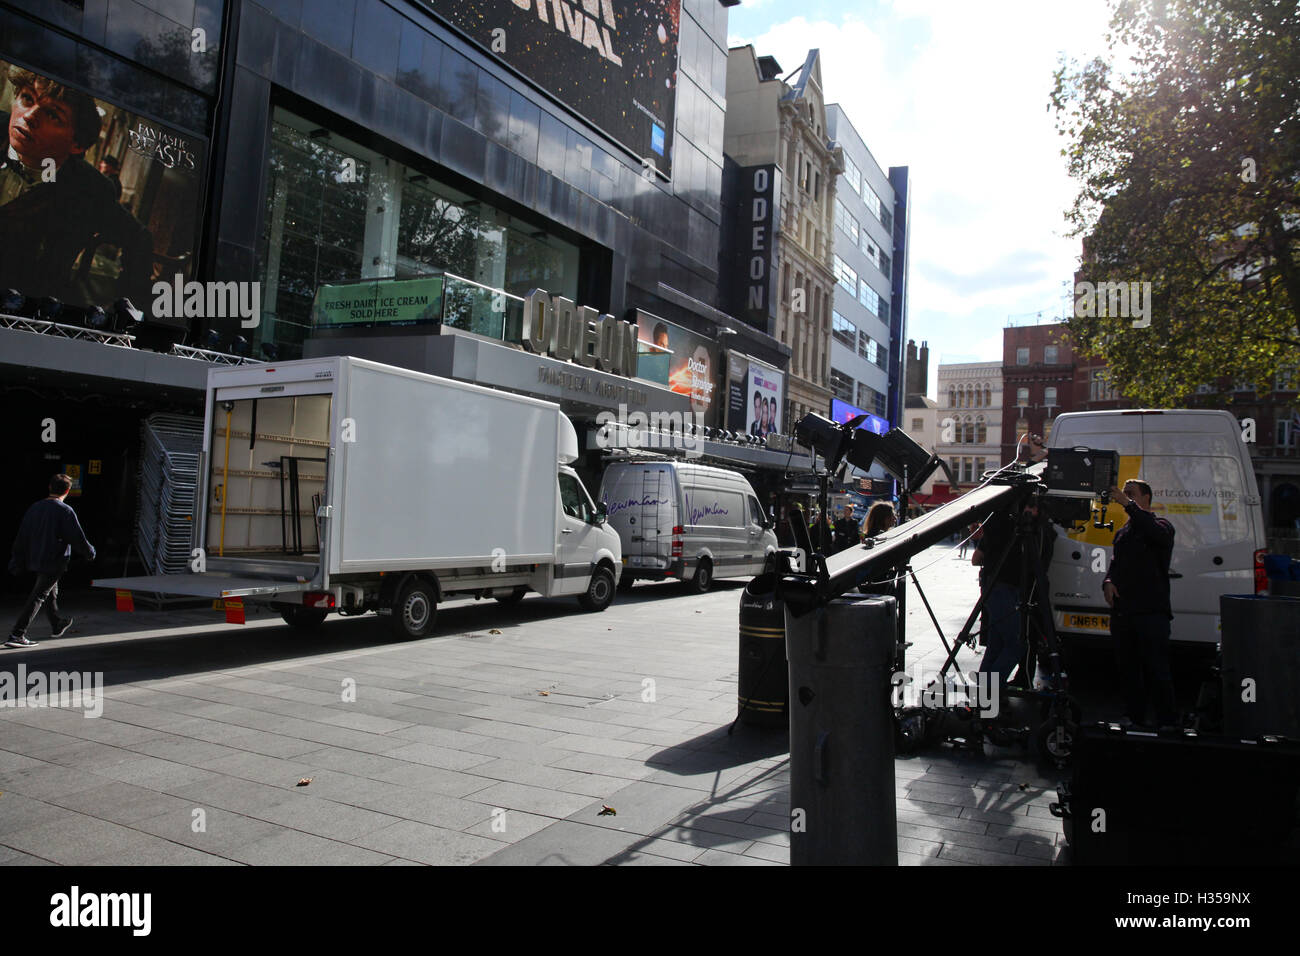 Odeon Leicester Square, London, UK. 5th October, 2016. Workman preparing for BFI London Film Festival in Leicester - Stock Image